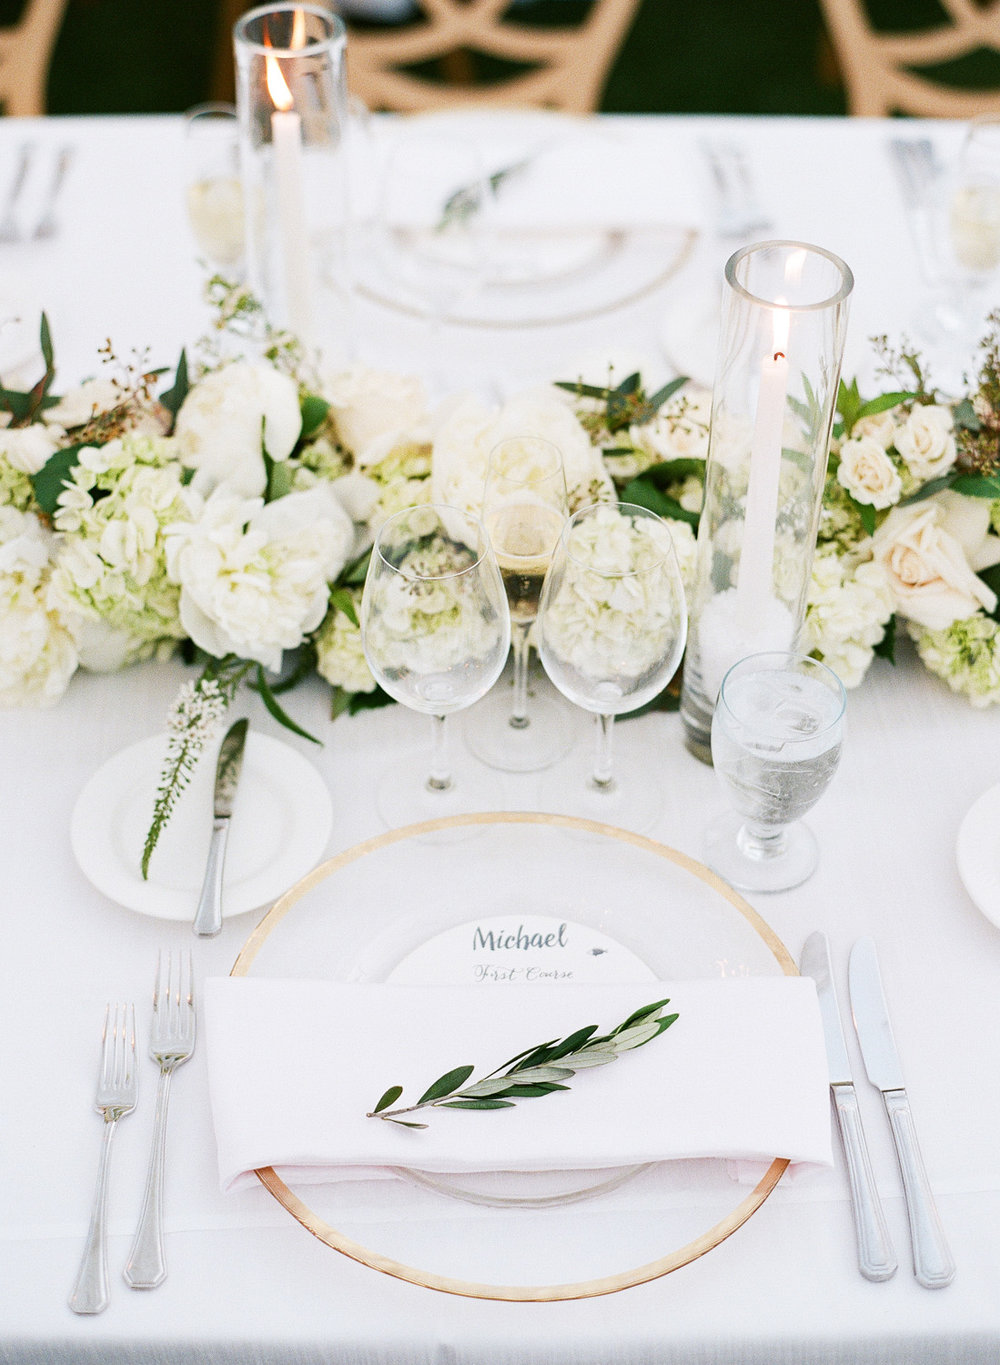 White floral table runners with gold trimmed table settings; Sylvie Gil Photography